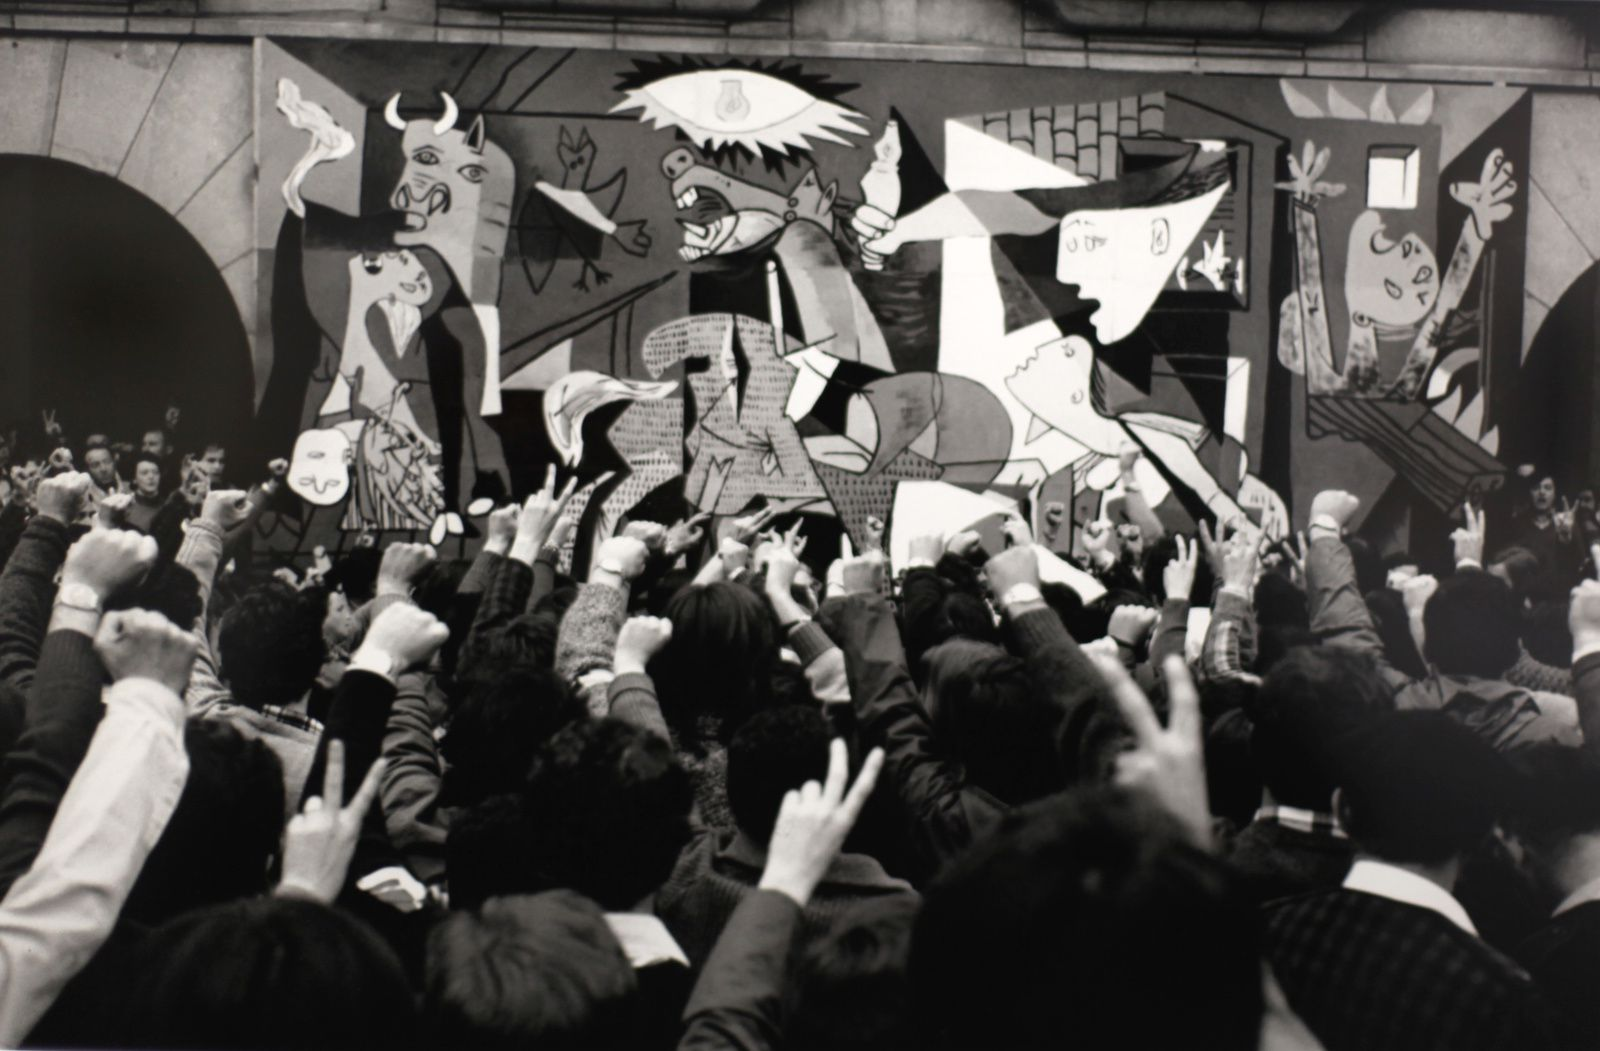 """Habitants de GUERNICA devant une reproduction du tableau de Pablo PICASSO"", 1977 de Léonard FREED © Photo Éric Simon"